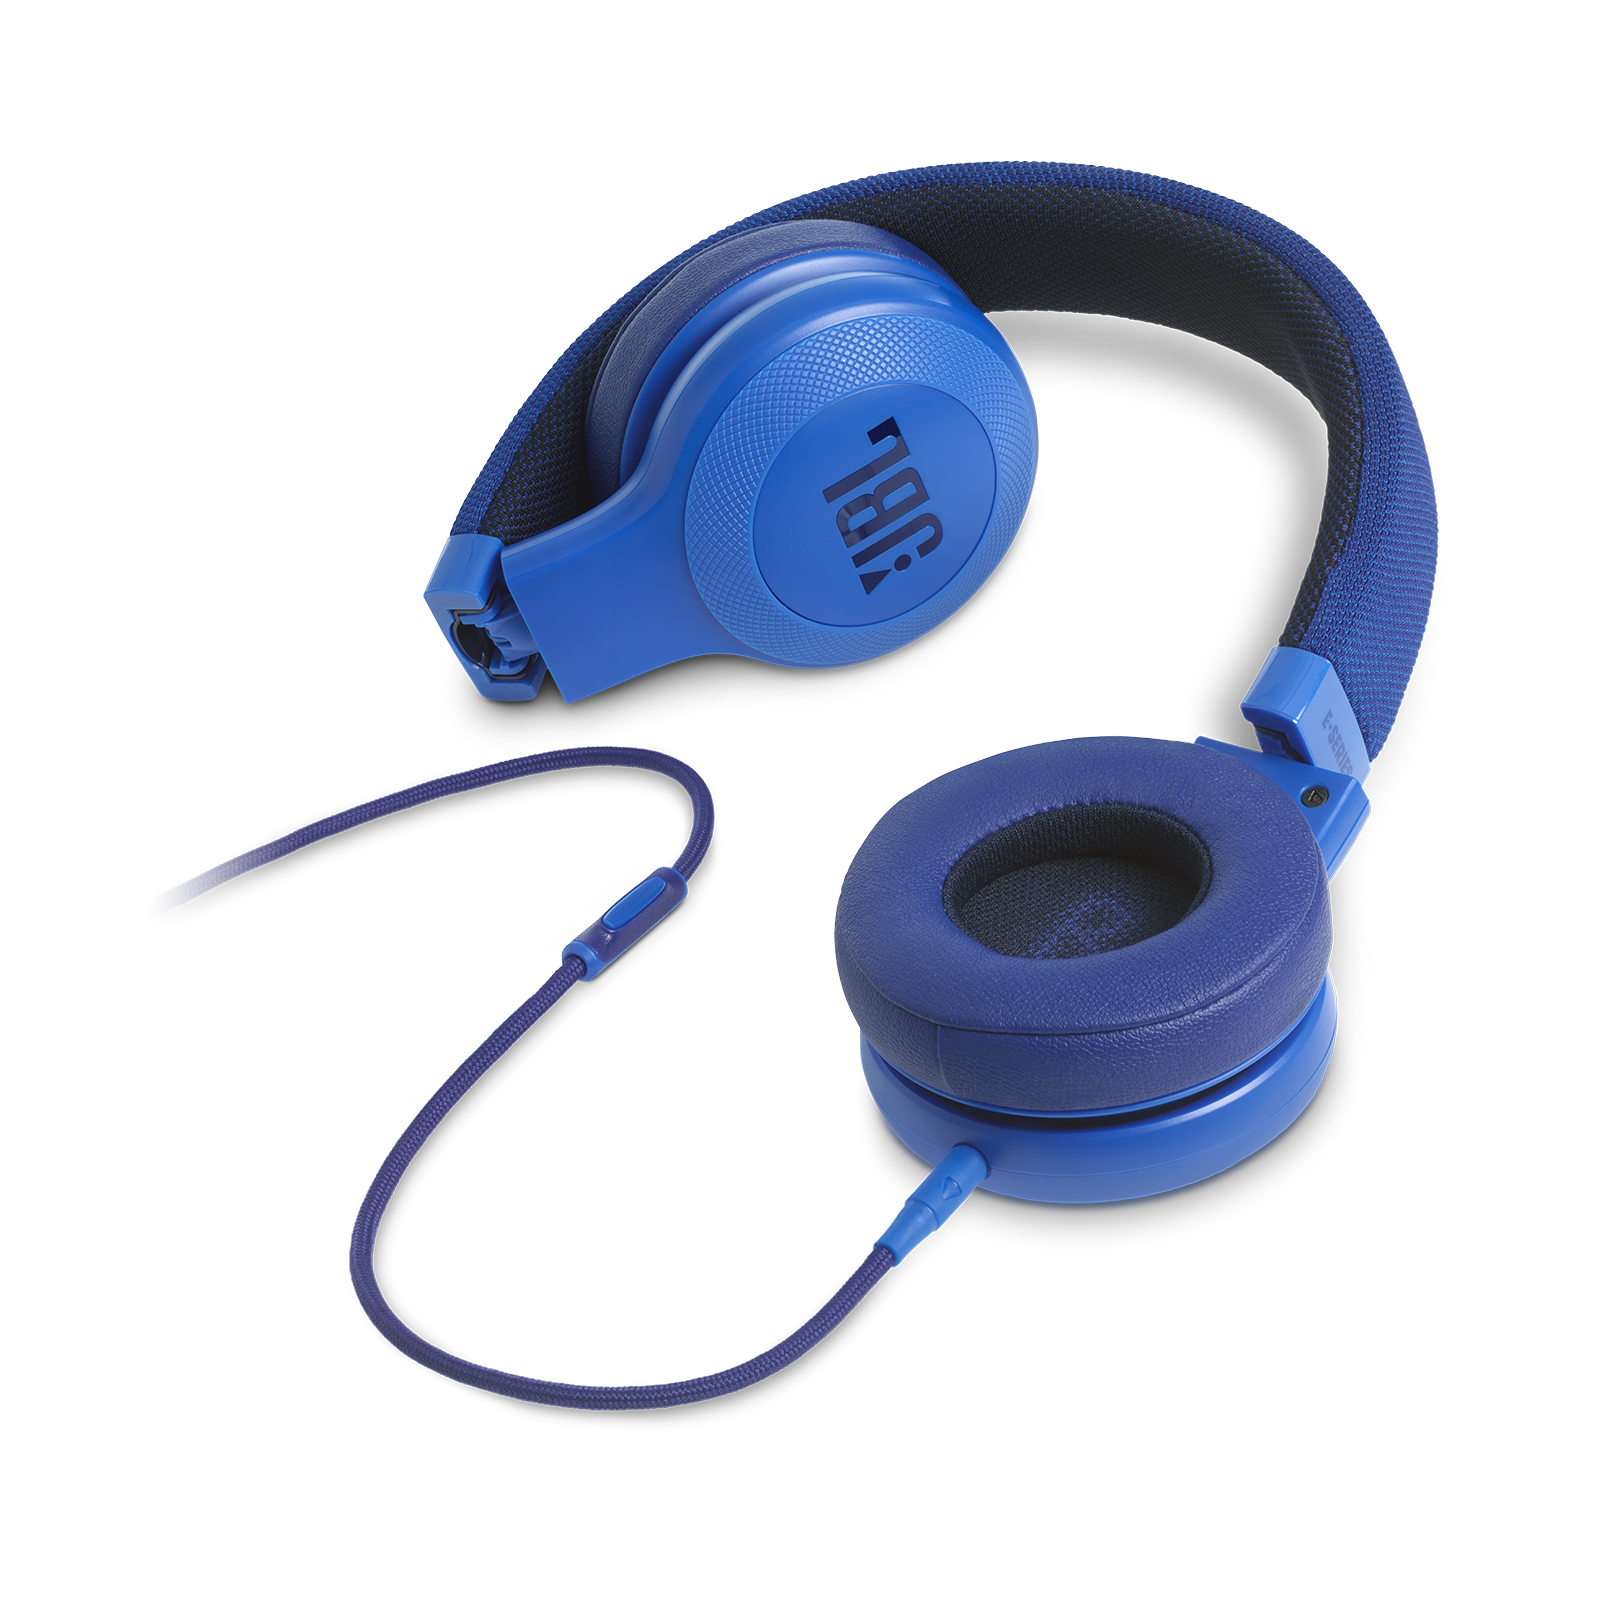 E35 - Blue - On-ear headphones - Detailshot 3